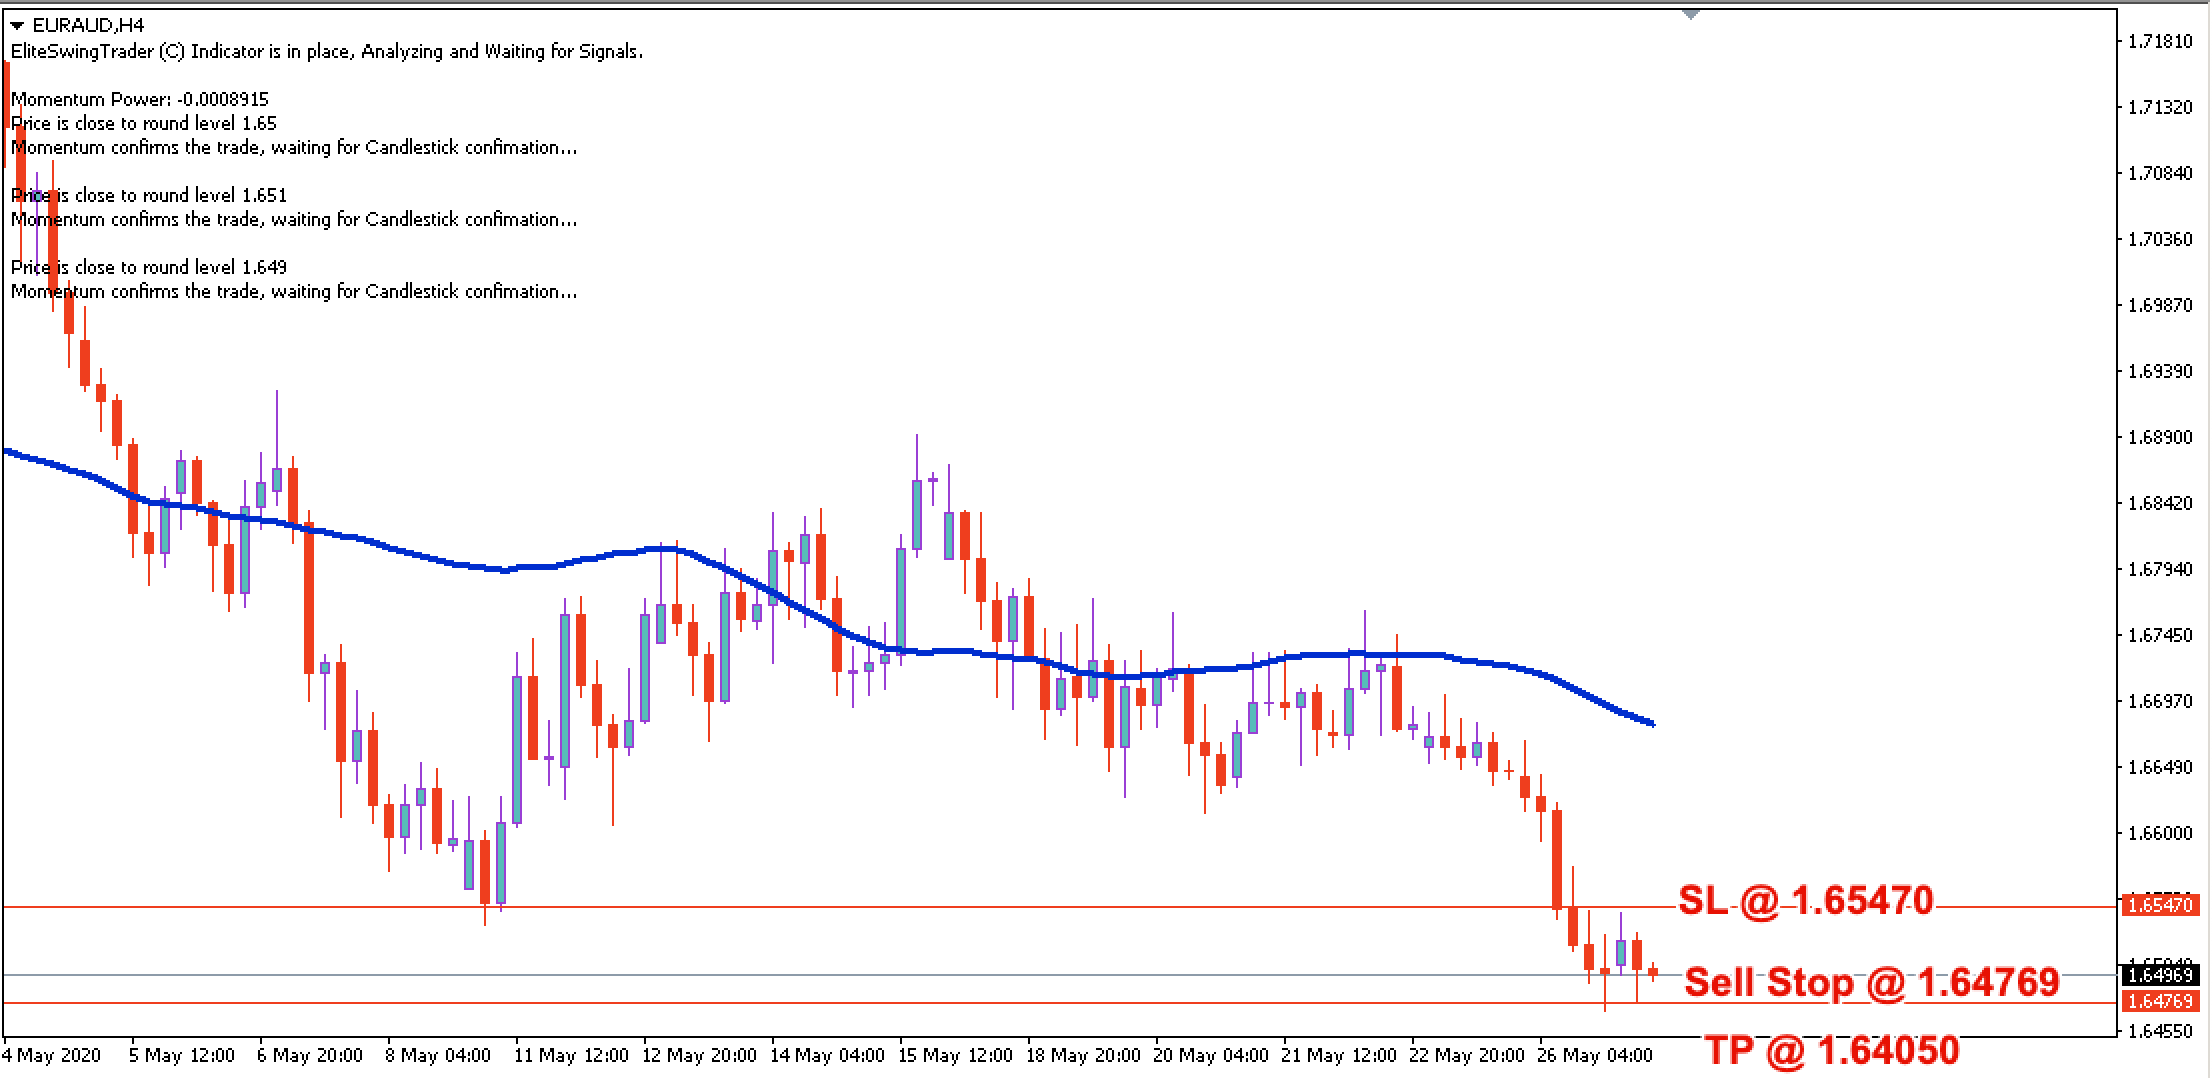 EUR/AUD Free Trade Signal – 27th May 2020